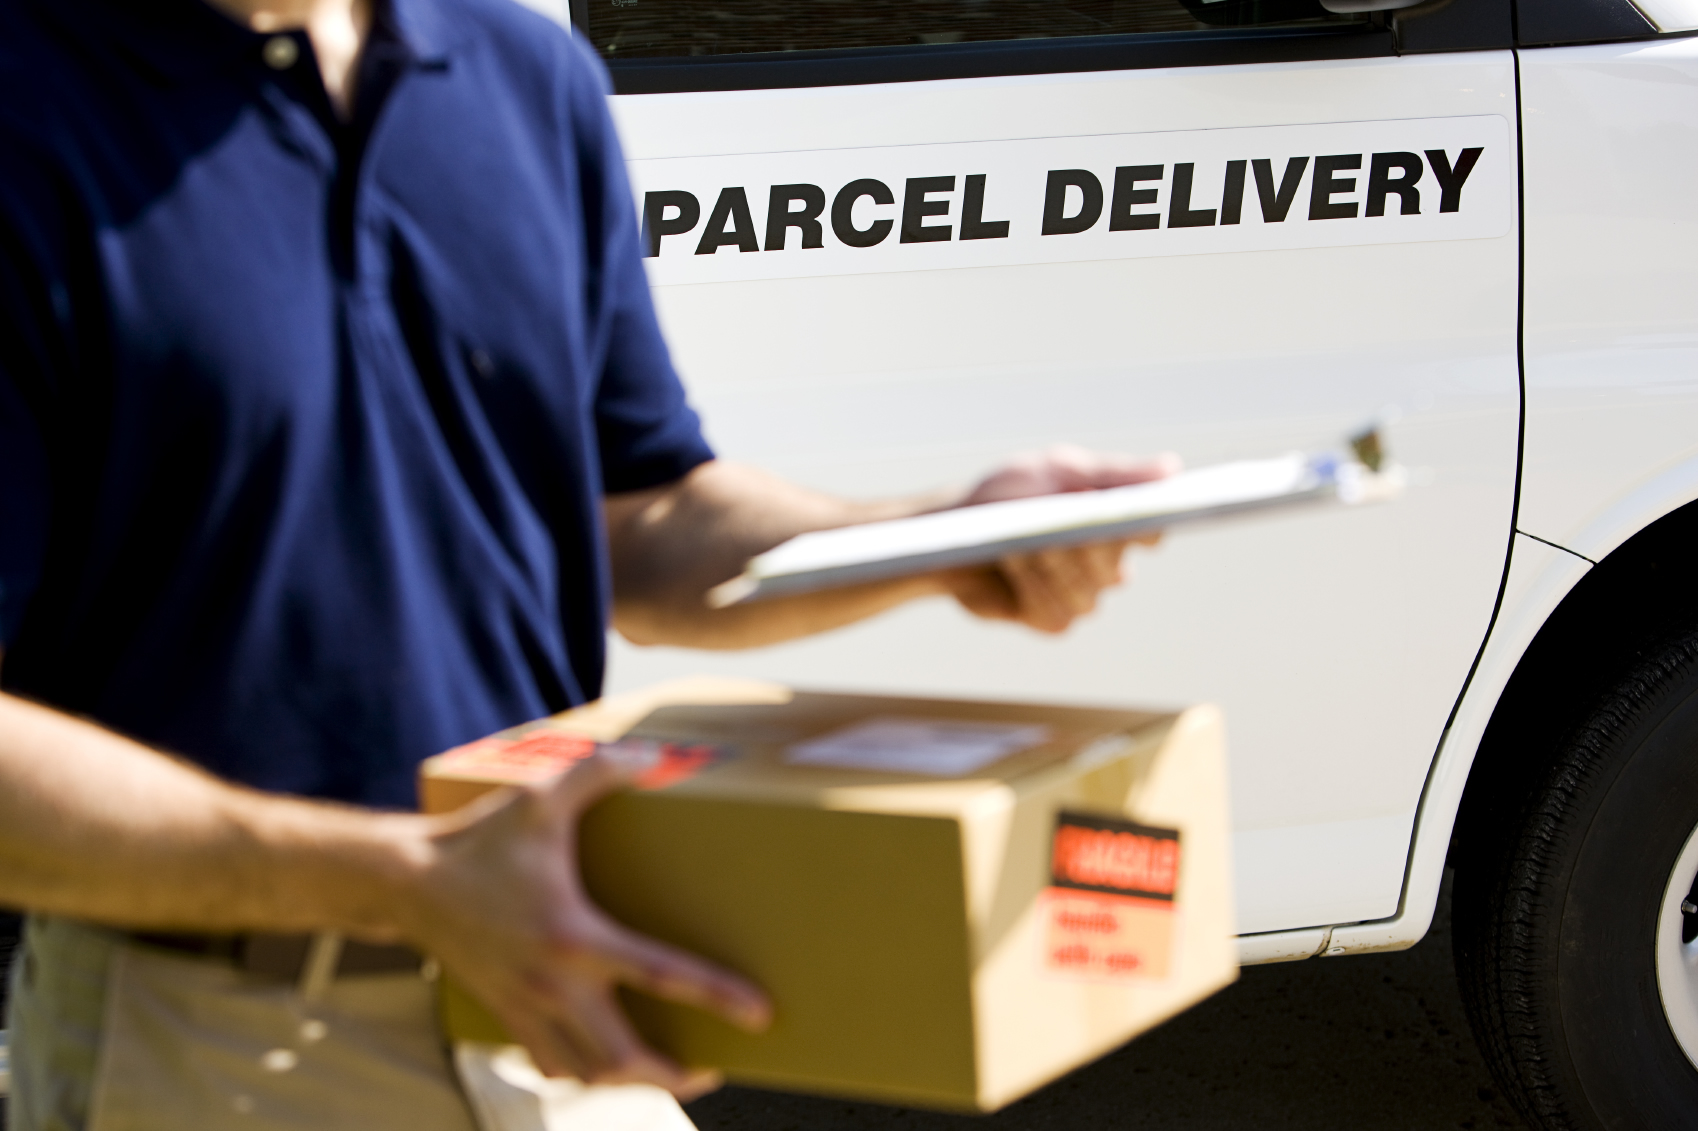 My-Parcel-Delivery-Discount-Code